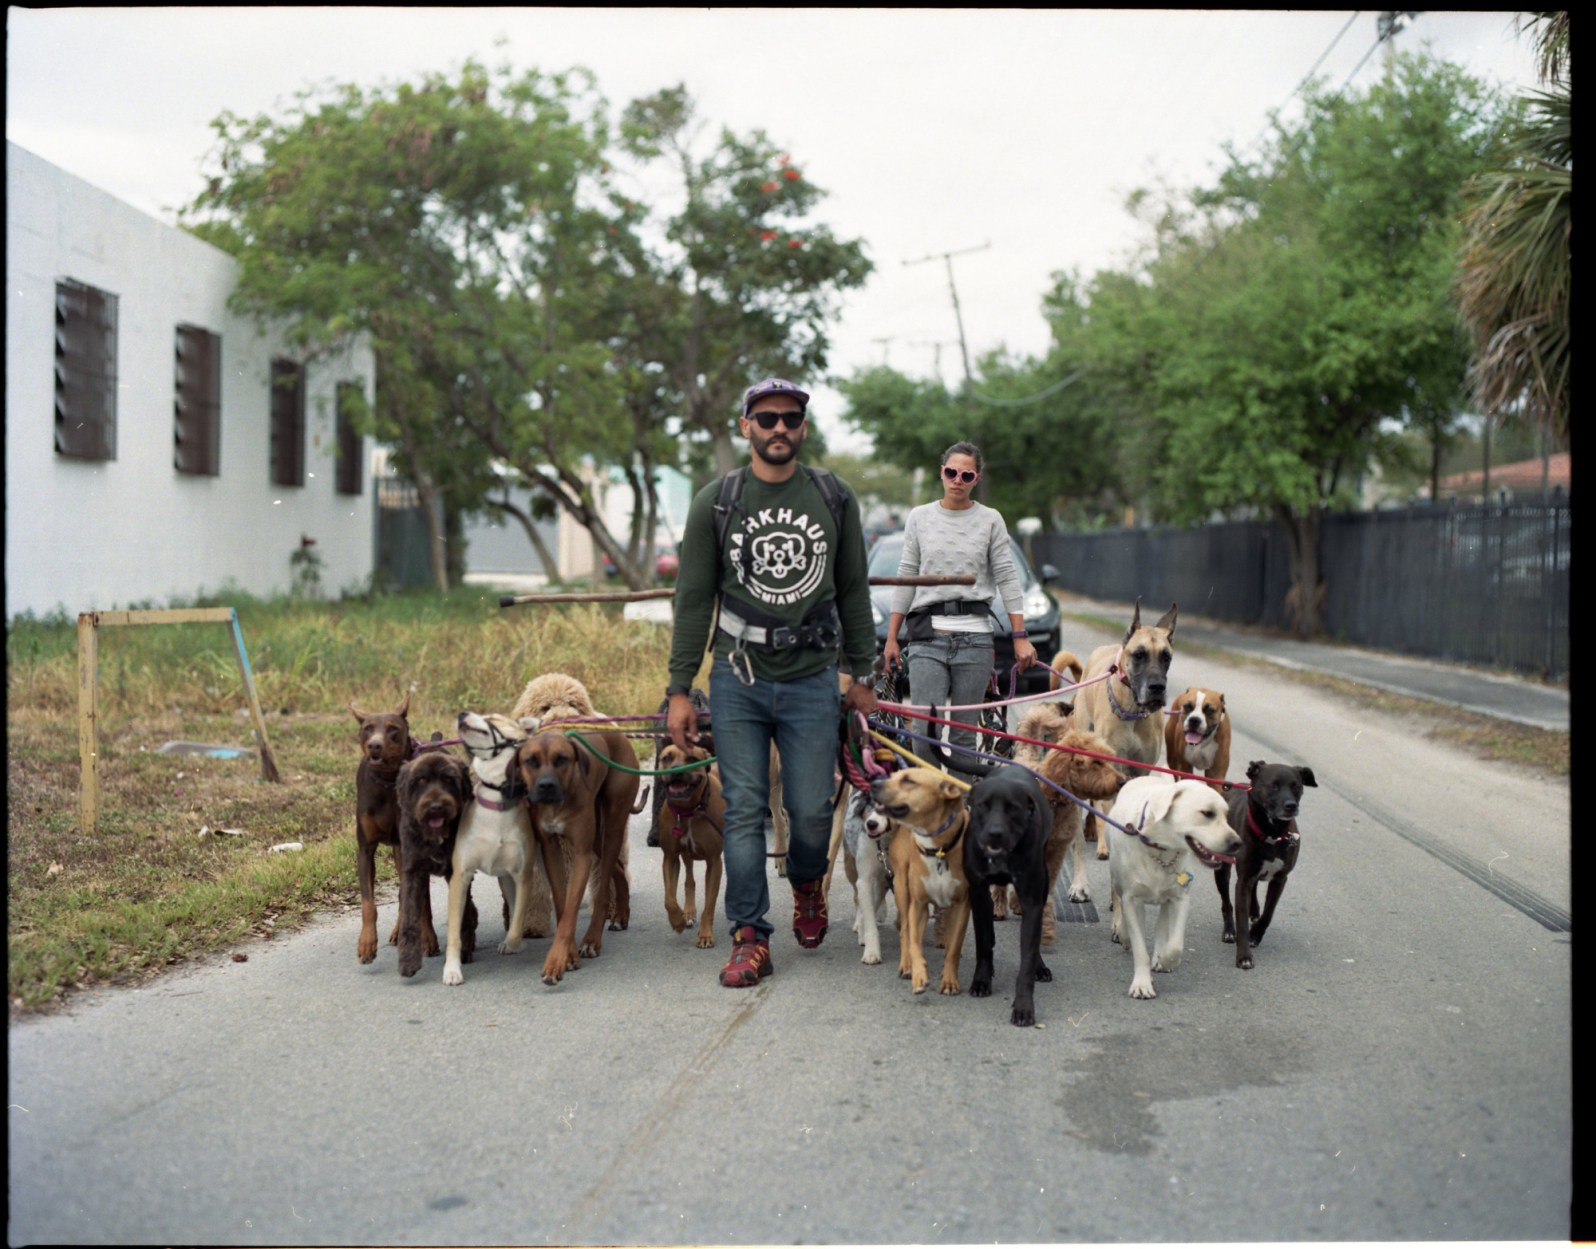 Barkhaus walking their dogs in Little River (Courtesy of @KatieSadiePhoto)